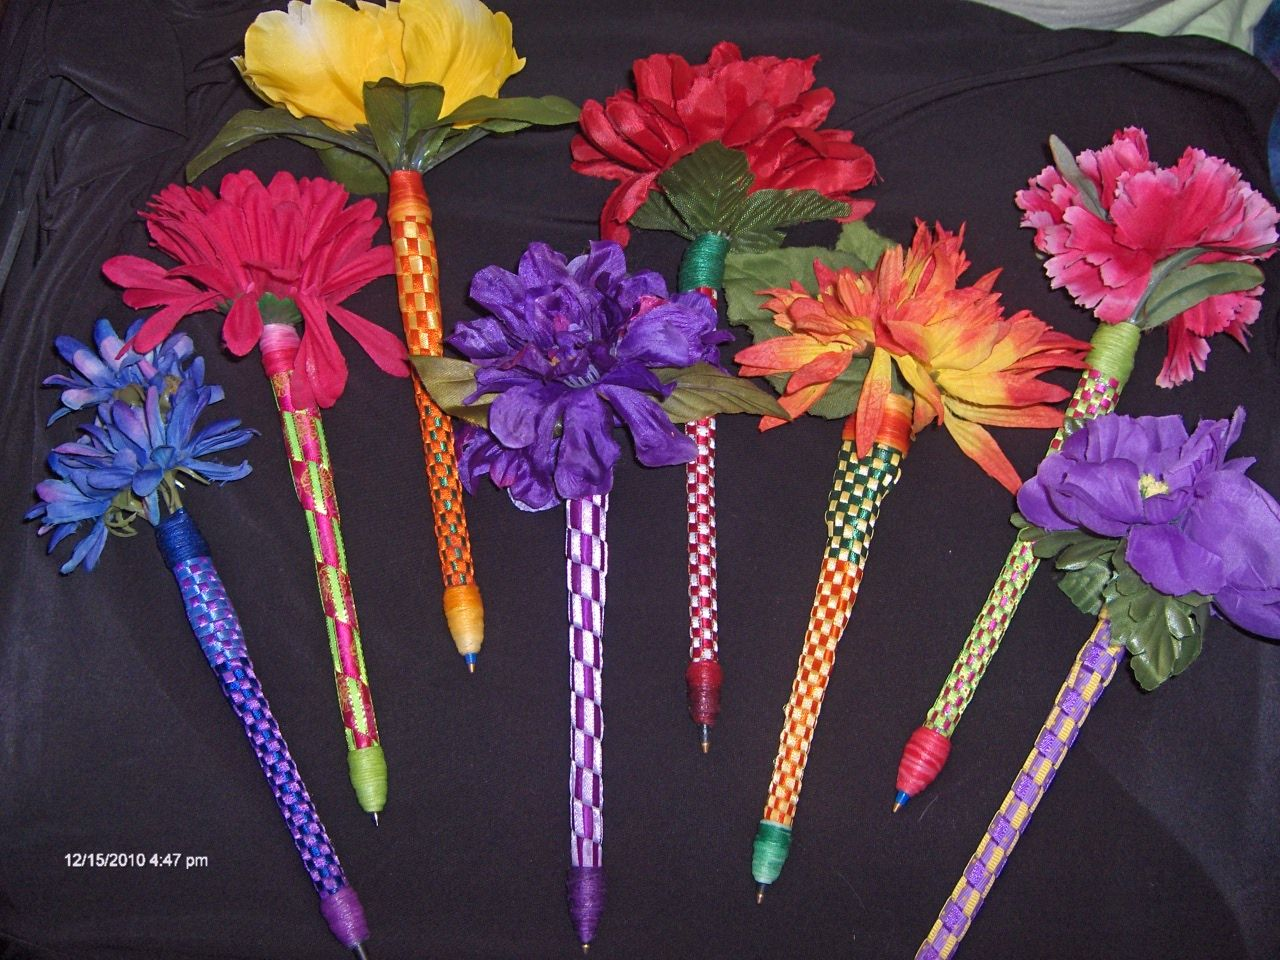 Small flowers for crafts - Craft